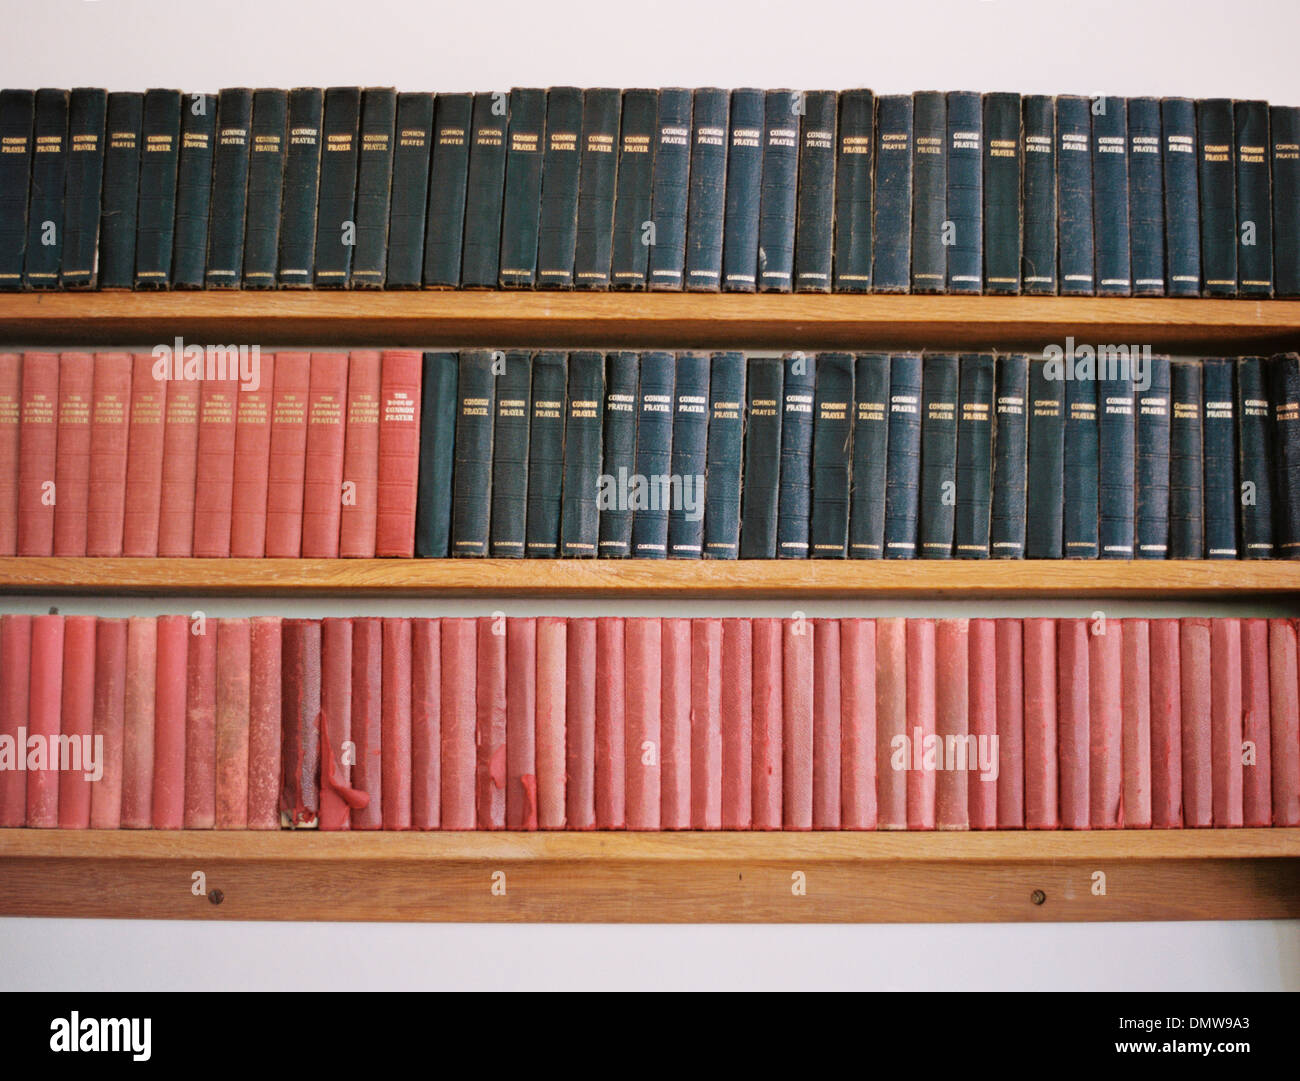 Old books on a shelf. Traditional church prayer books. Worn covers. - Stock Image